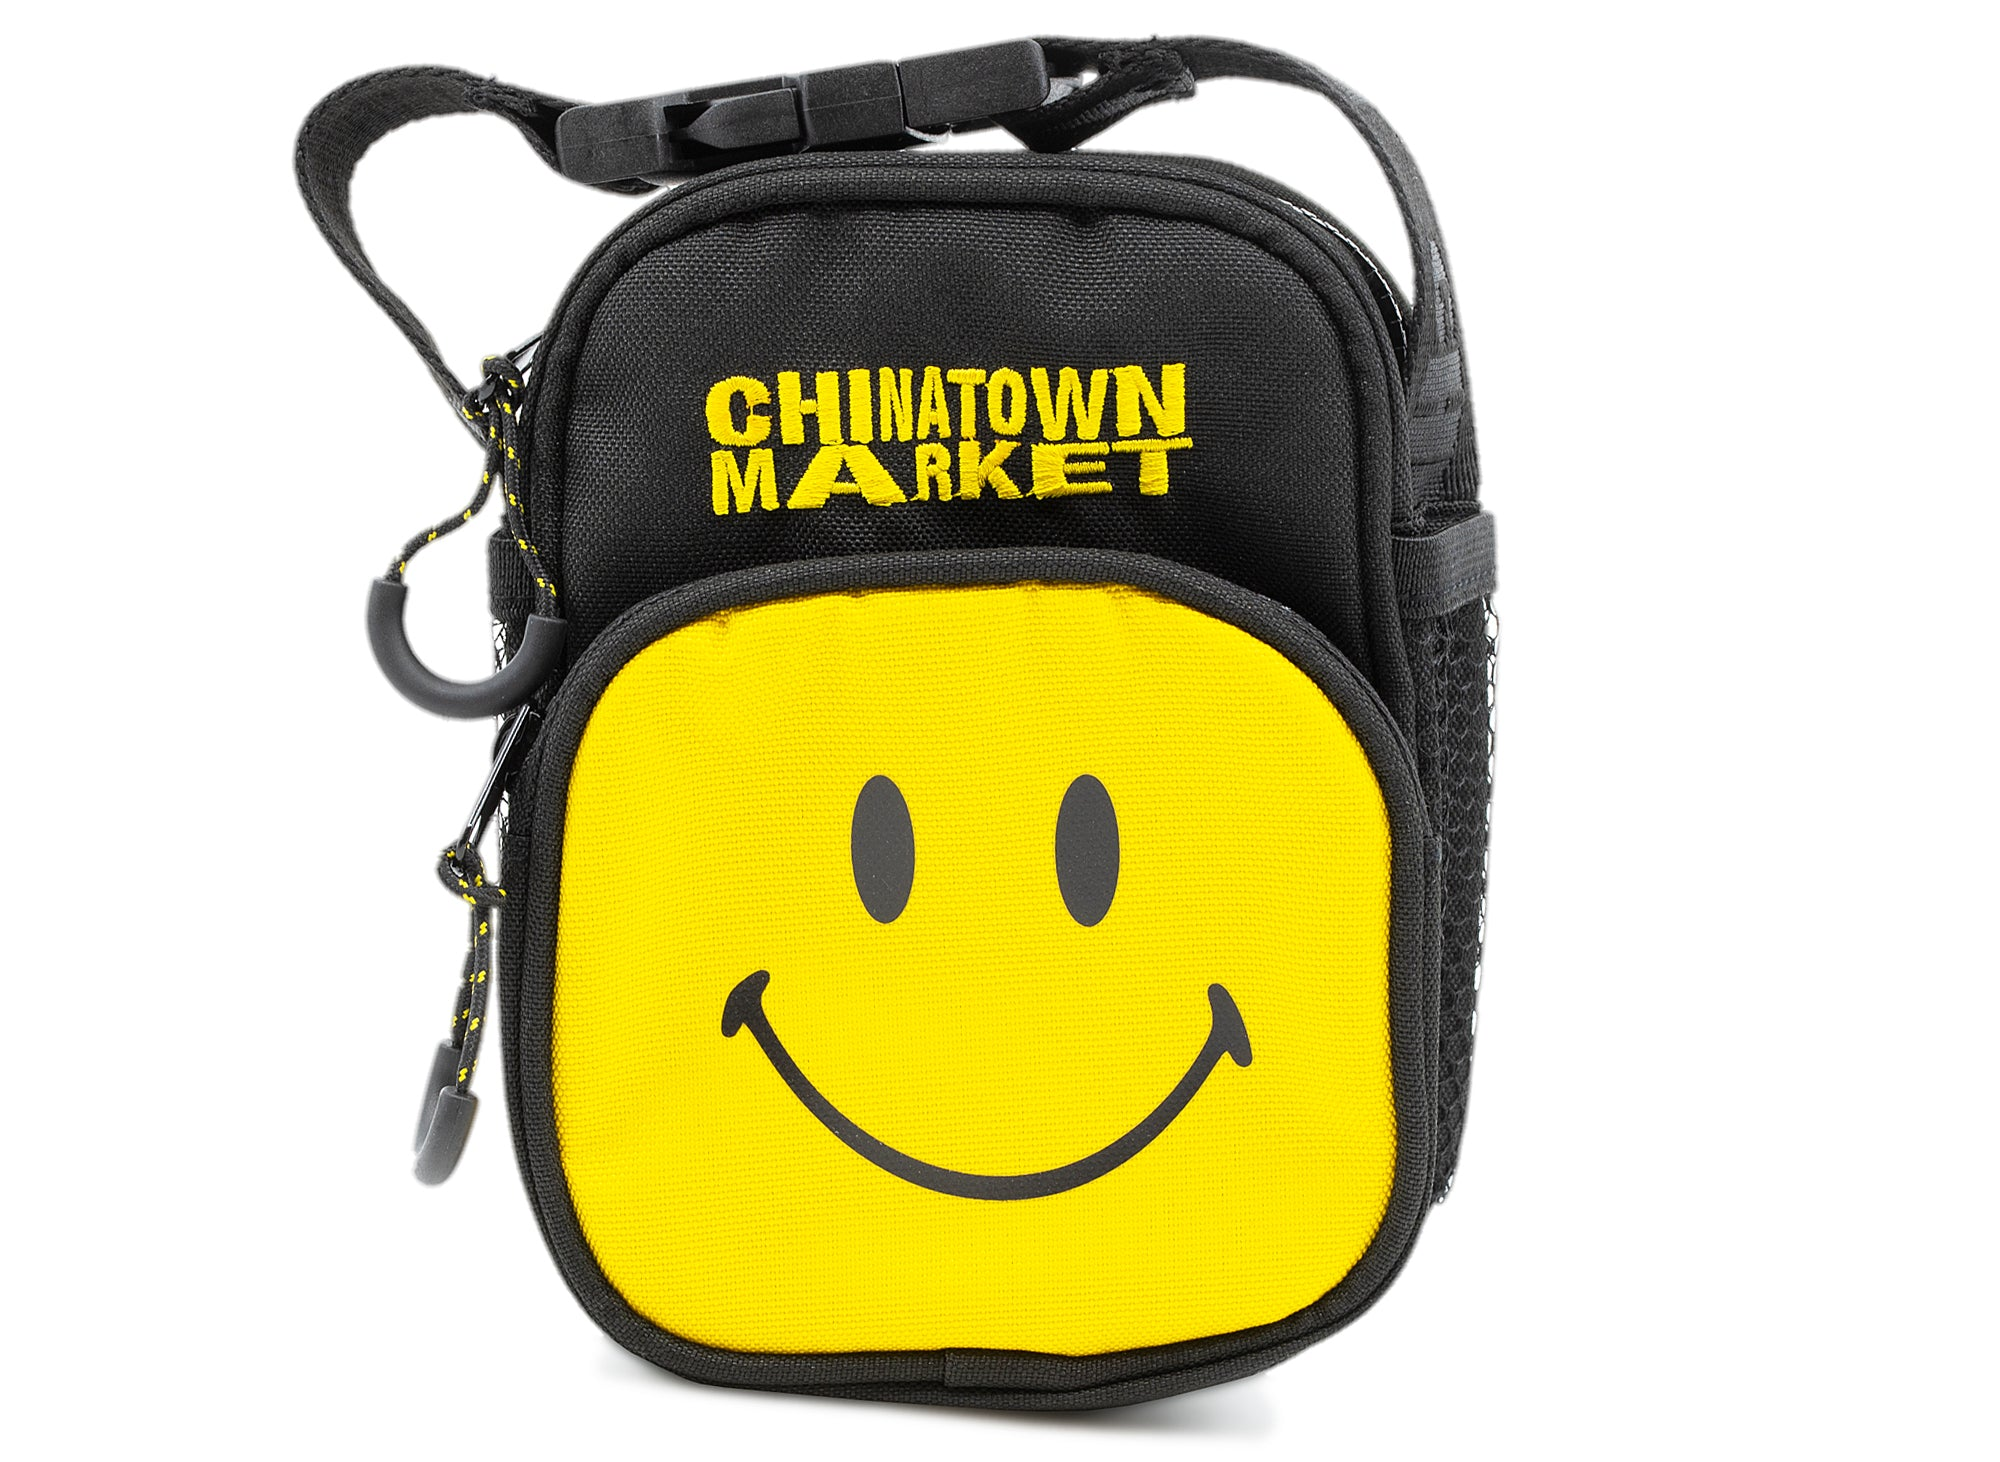 Chinatown Market Smiley Side Bag xld